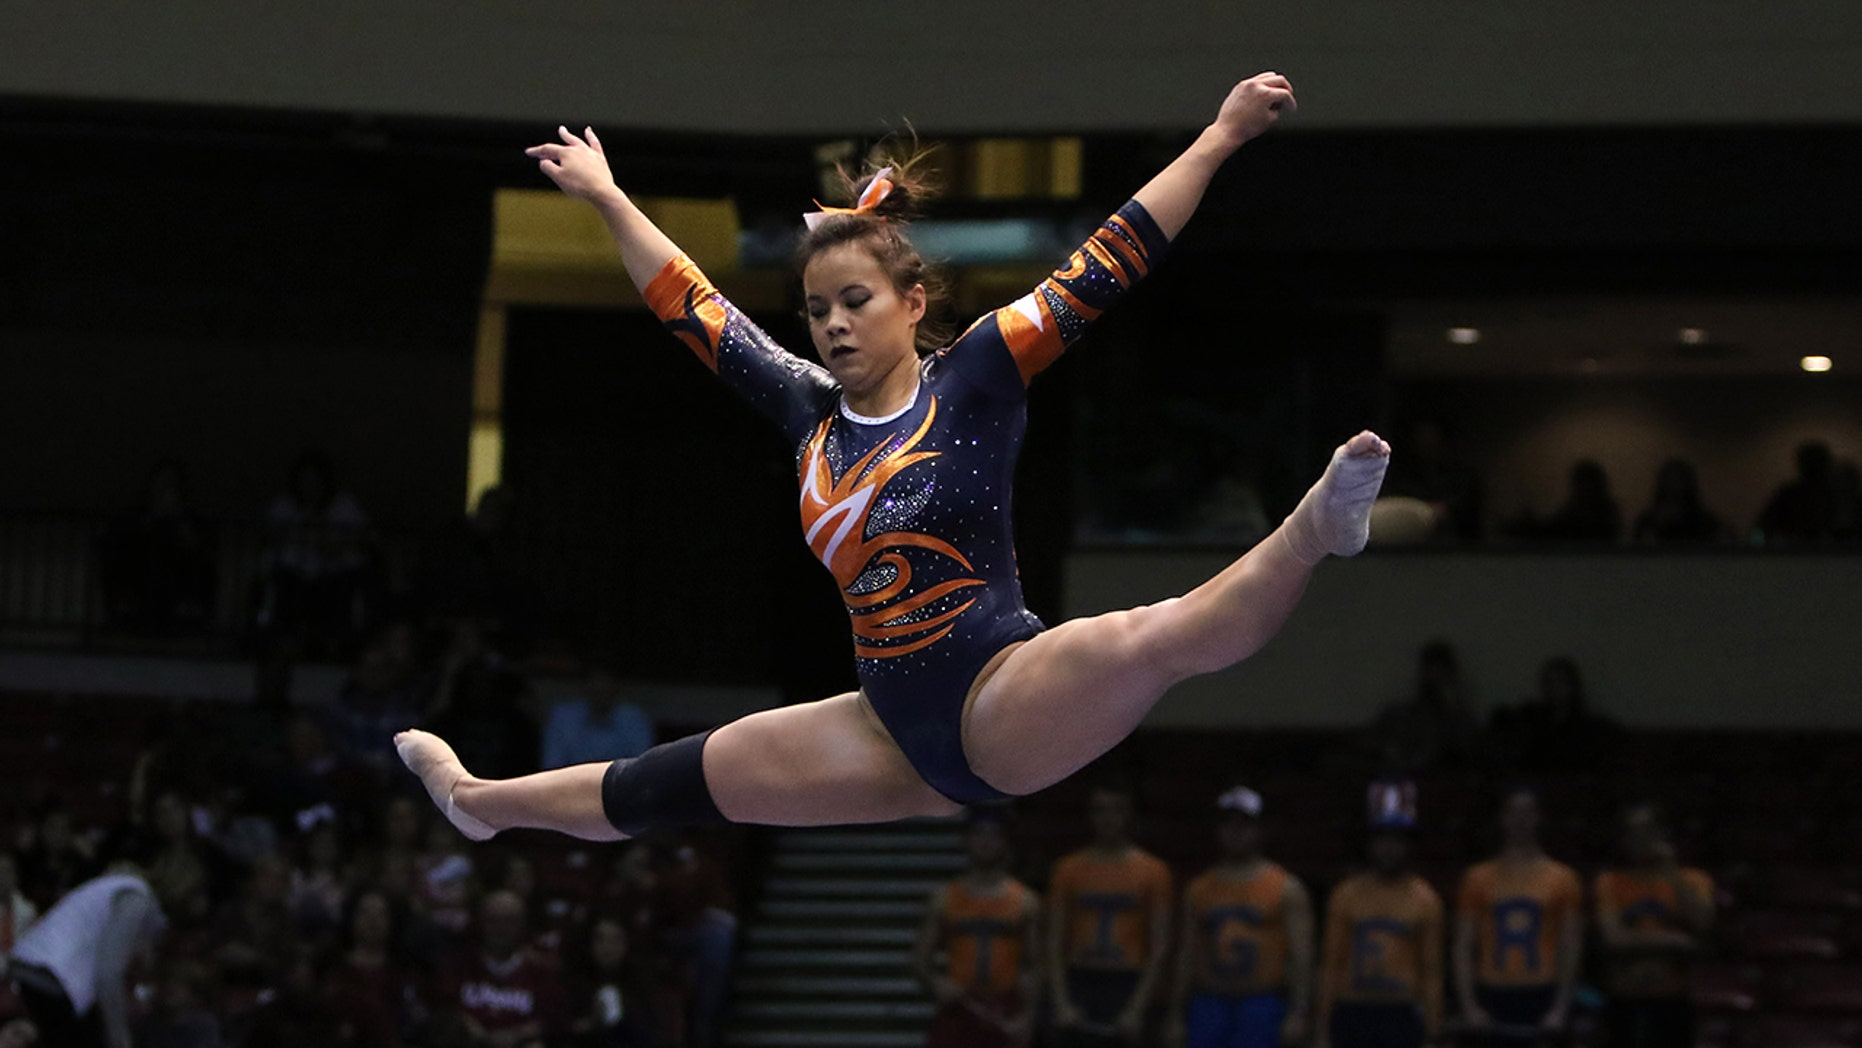 Auburn Tigers Samantha Cerio was seriously injured during her floor routine on Friday.